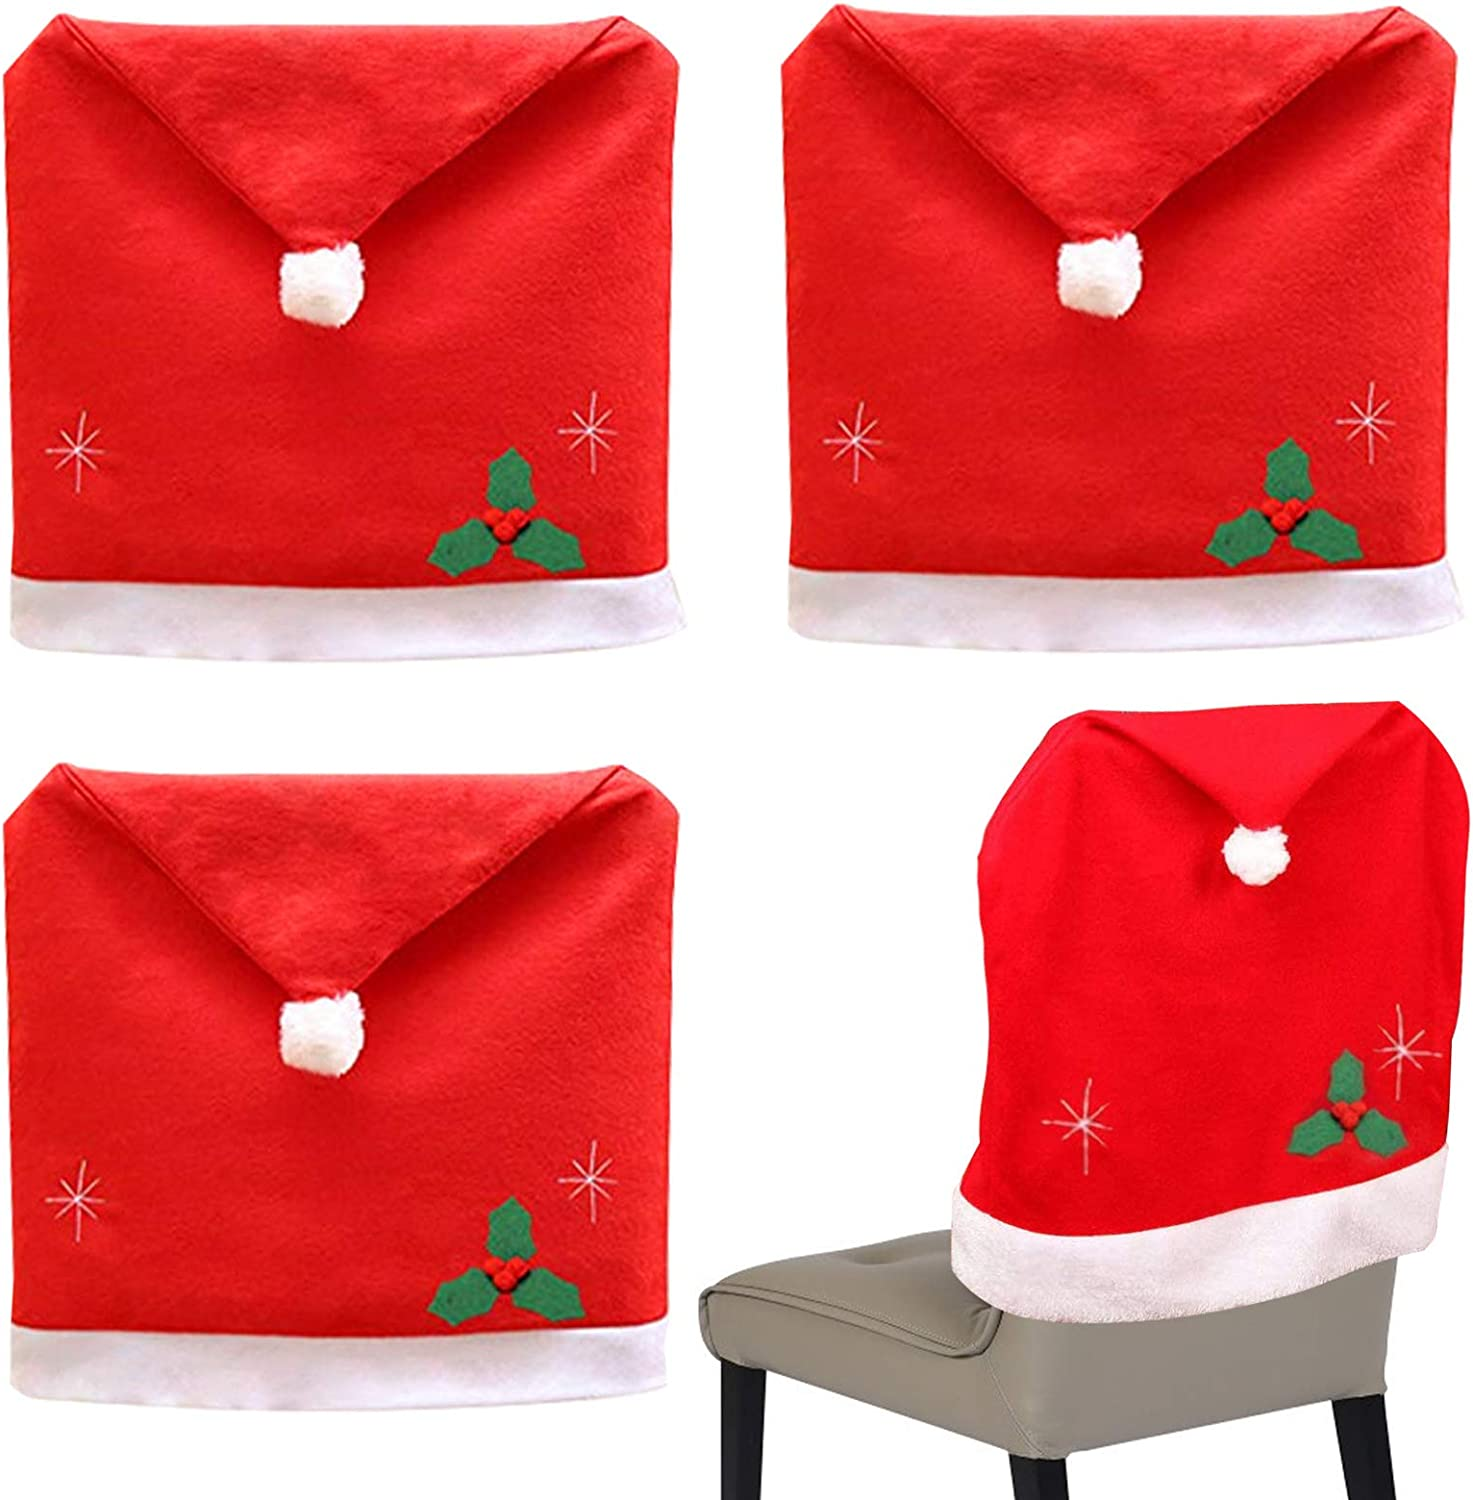 Amazon Com Koogel Christmas Dining Chair Slipcovers 4 Pcs 25 X 20 Inch Chair Back Covers Santa Hat Chair Covers For Christmas Banquet Holiday Festival Decor Kitchen Dining